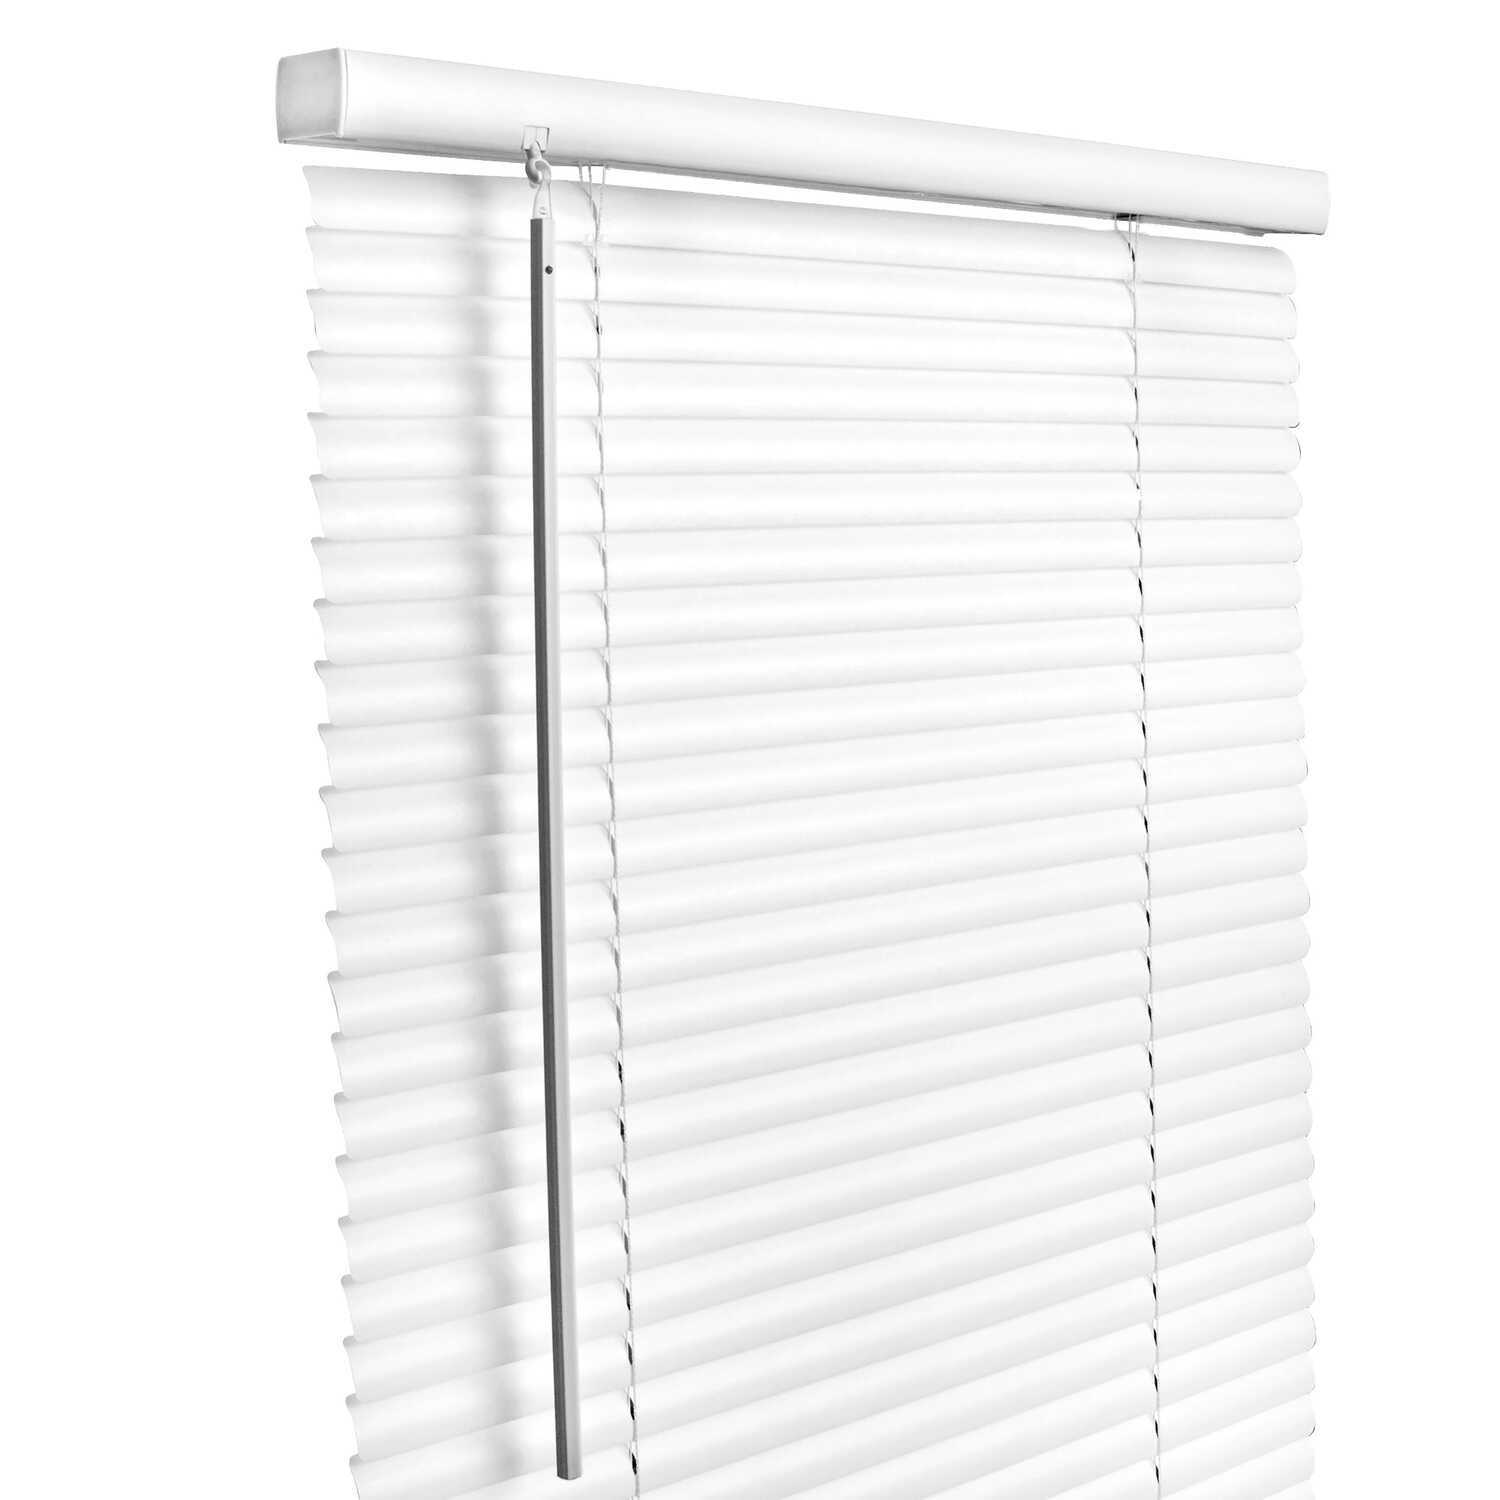 Living Accents  Vinyl  1 in. Mini-Blinds  64 in. W x 52 in. H White  Cordless